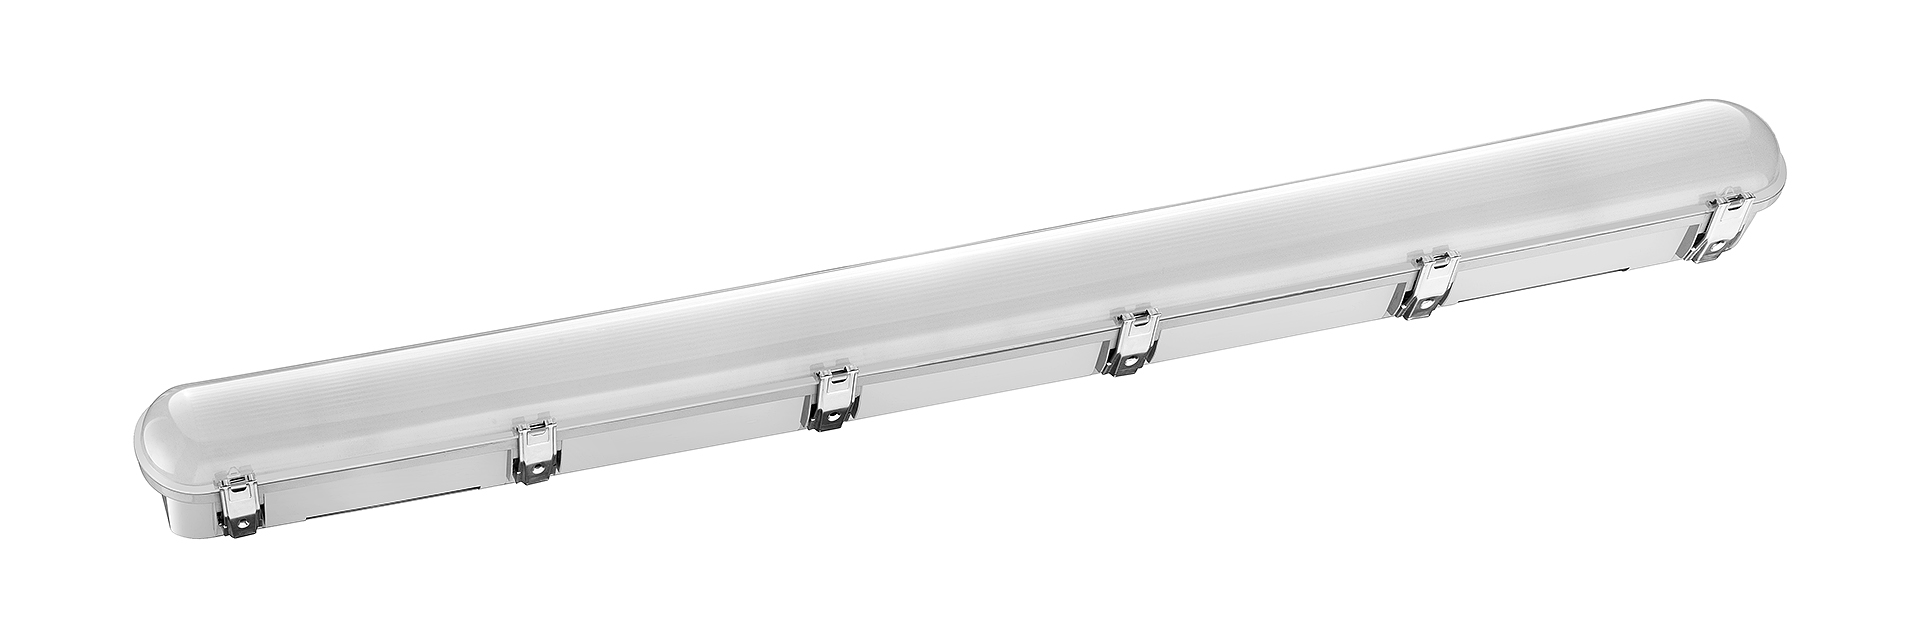 LED Feuchtraumleuchte Easy Eco IP65 1200mm